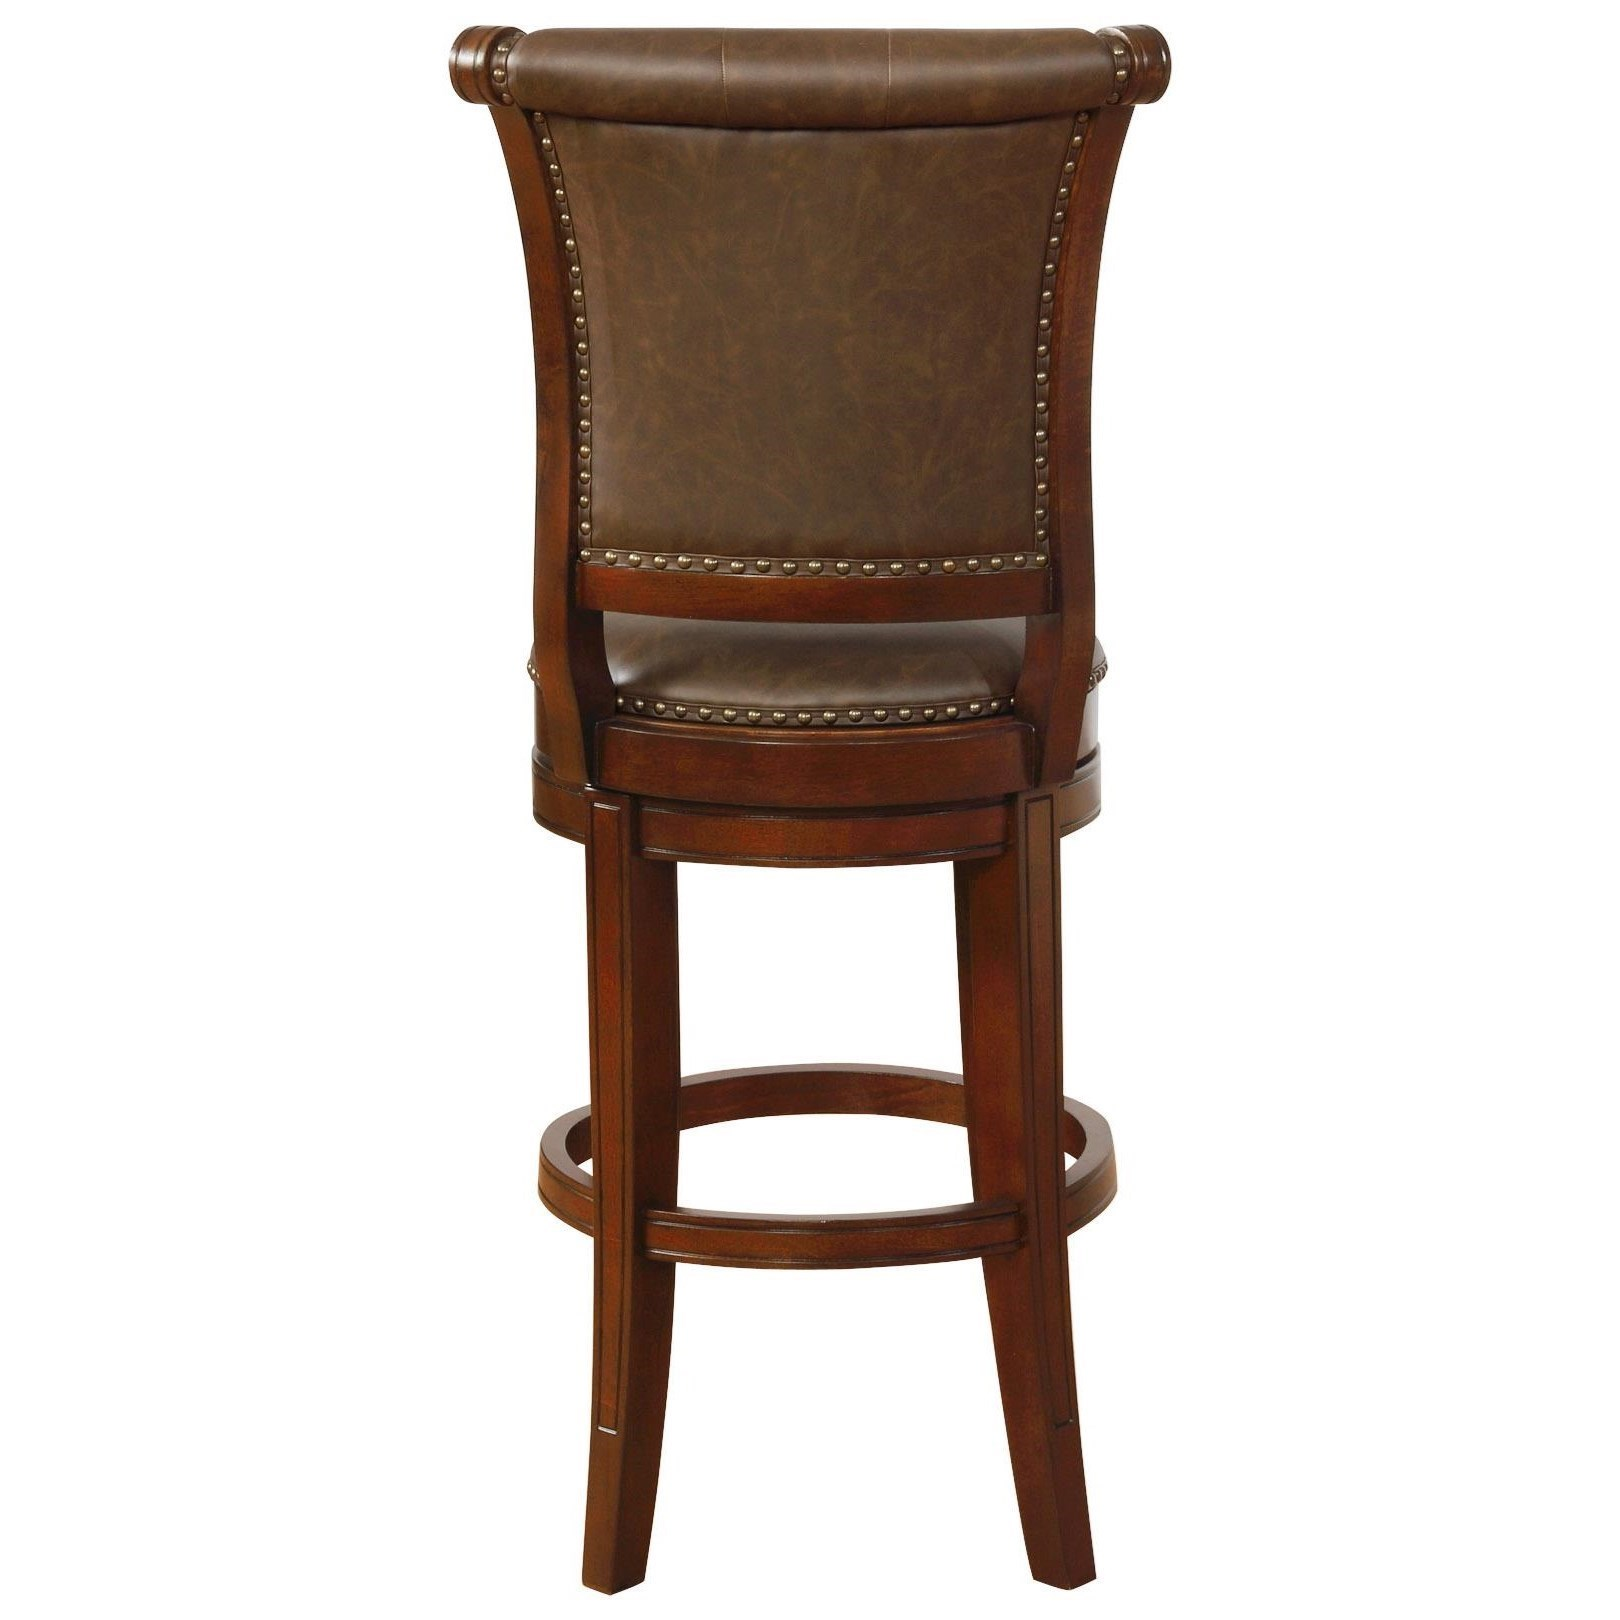 Swivel Bar Chairs Bar Stools Cm Traditional Swivel Bar Stool With Button Tufting By Crown Mark At Household Furniture